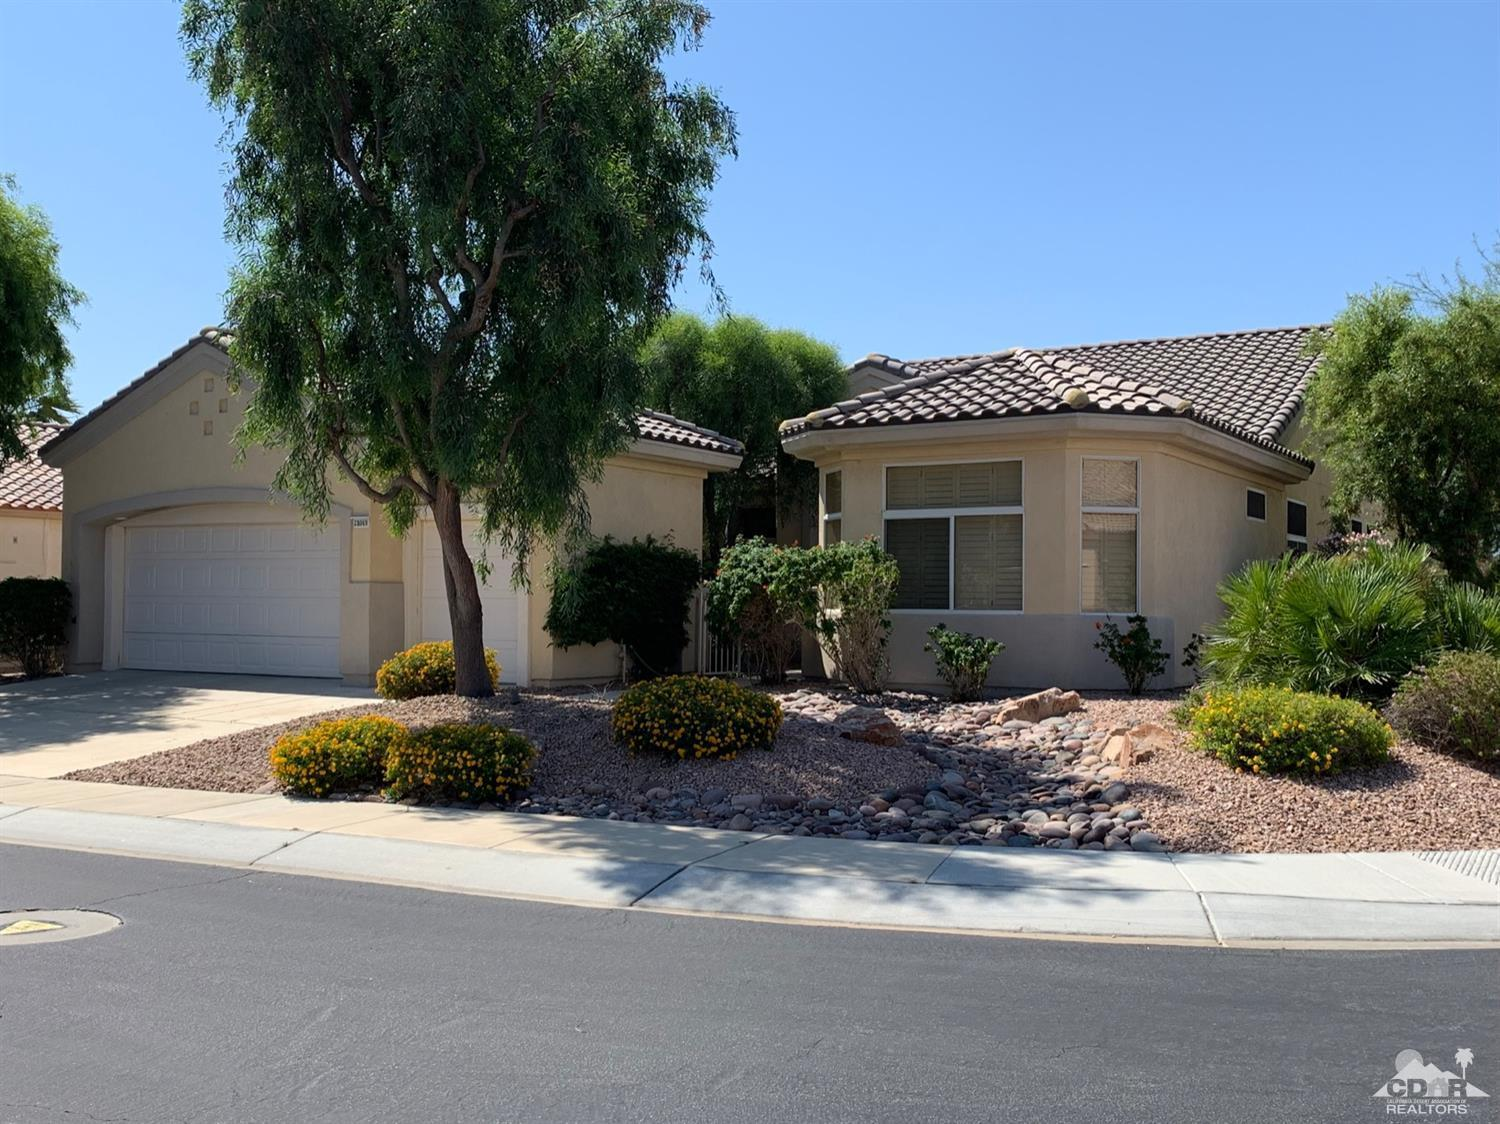 Photo of 78069 Elenbrook Court, Palm Desert, CA 92211